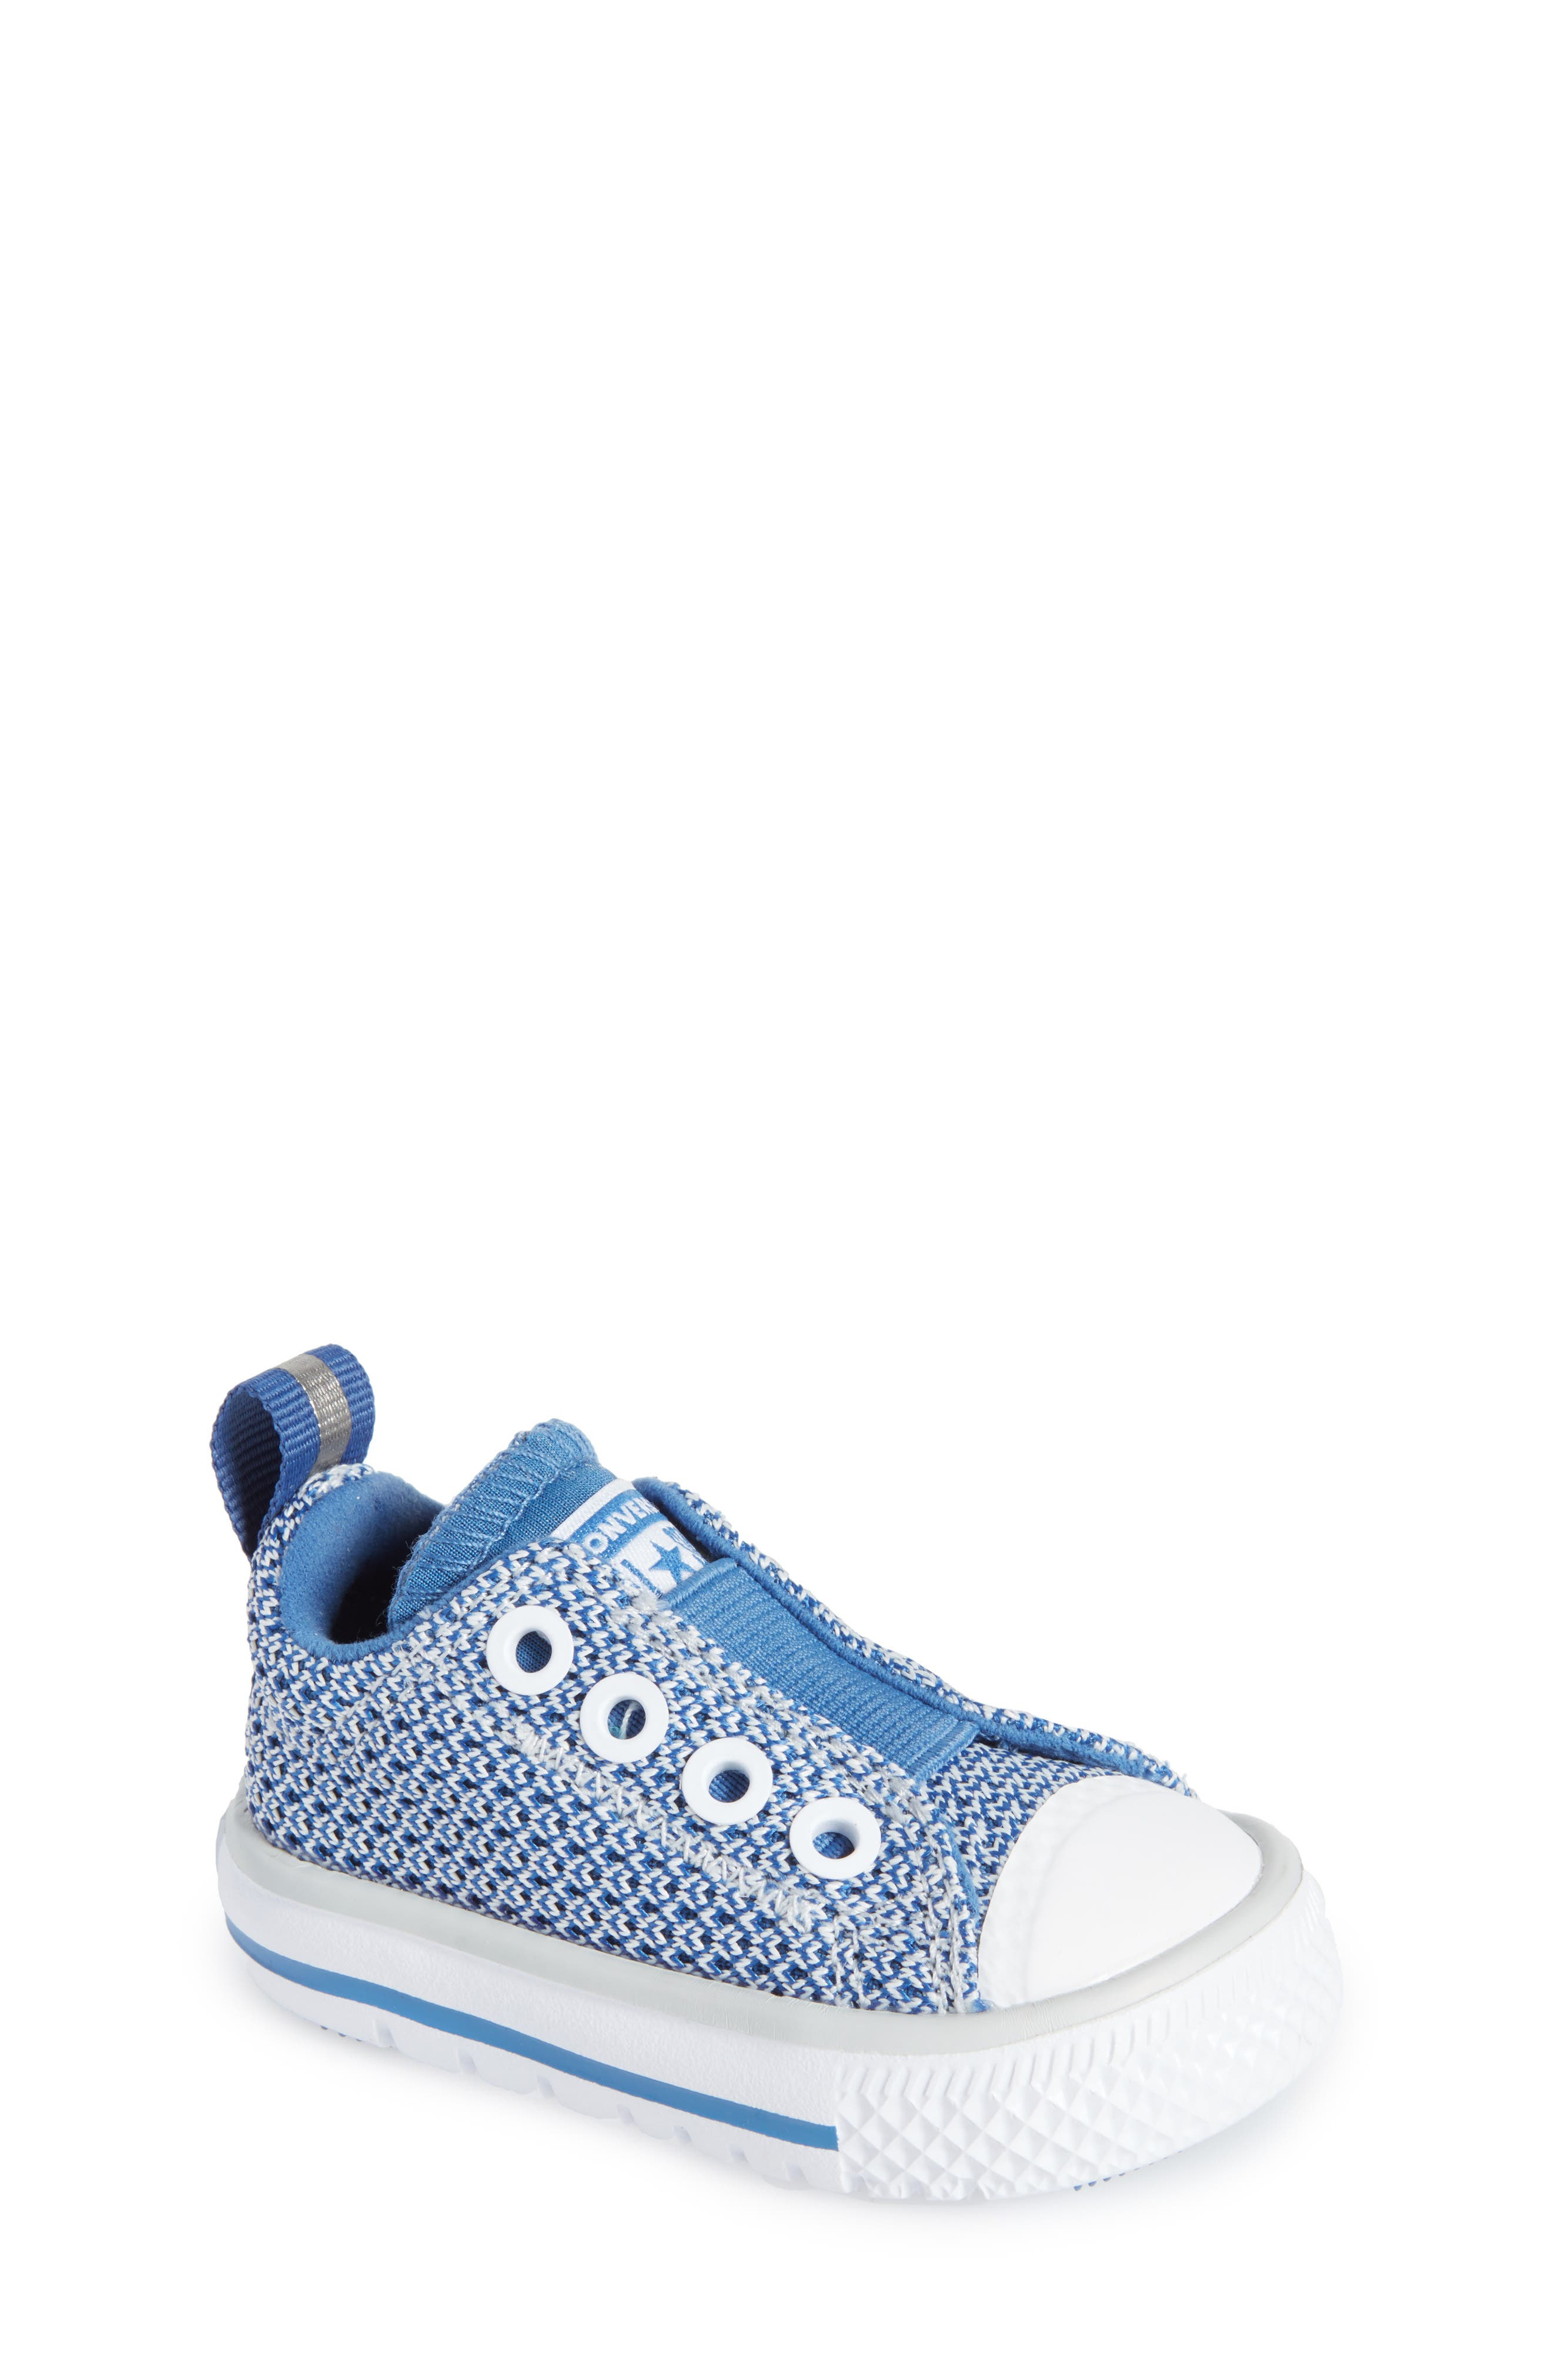 Kids Converse Chuck Taylor All Star Low Top Sneaker Frozen LilacCandy G